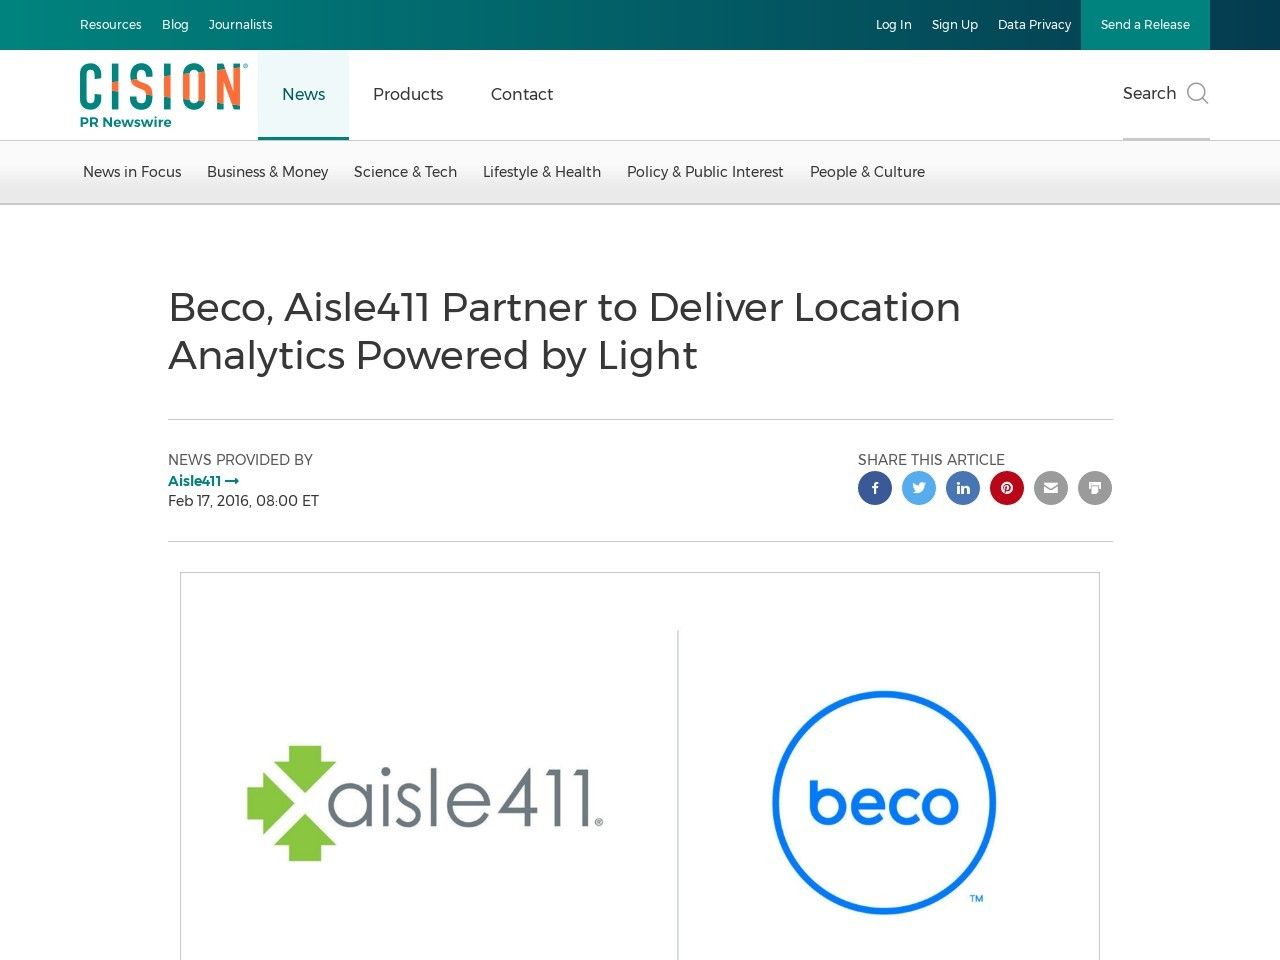 Beco, Aisle411 Partner to Deliver Location Analytics Powered by Light